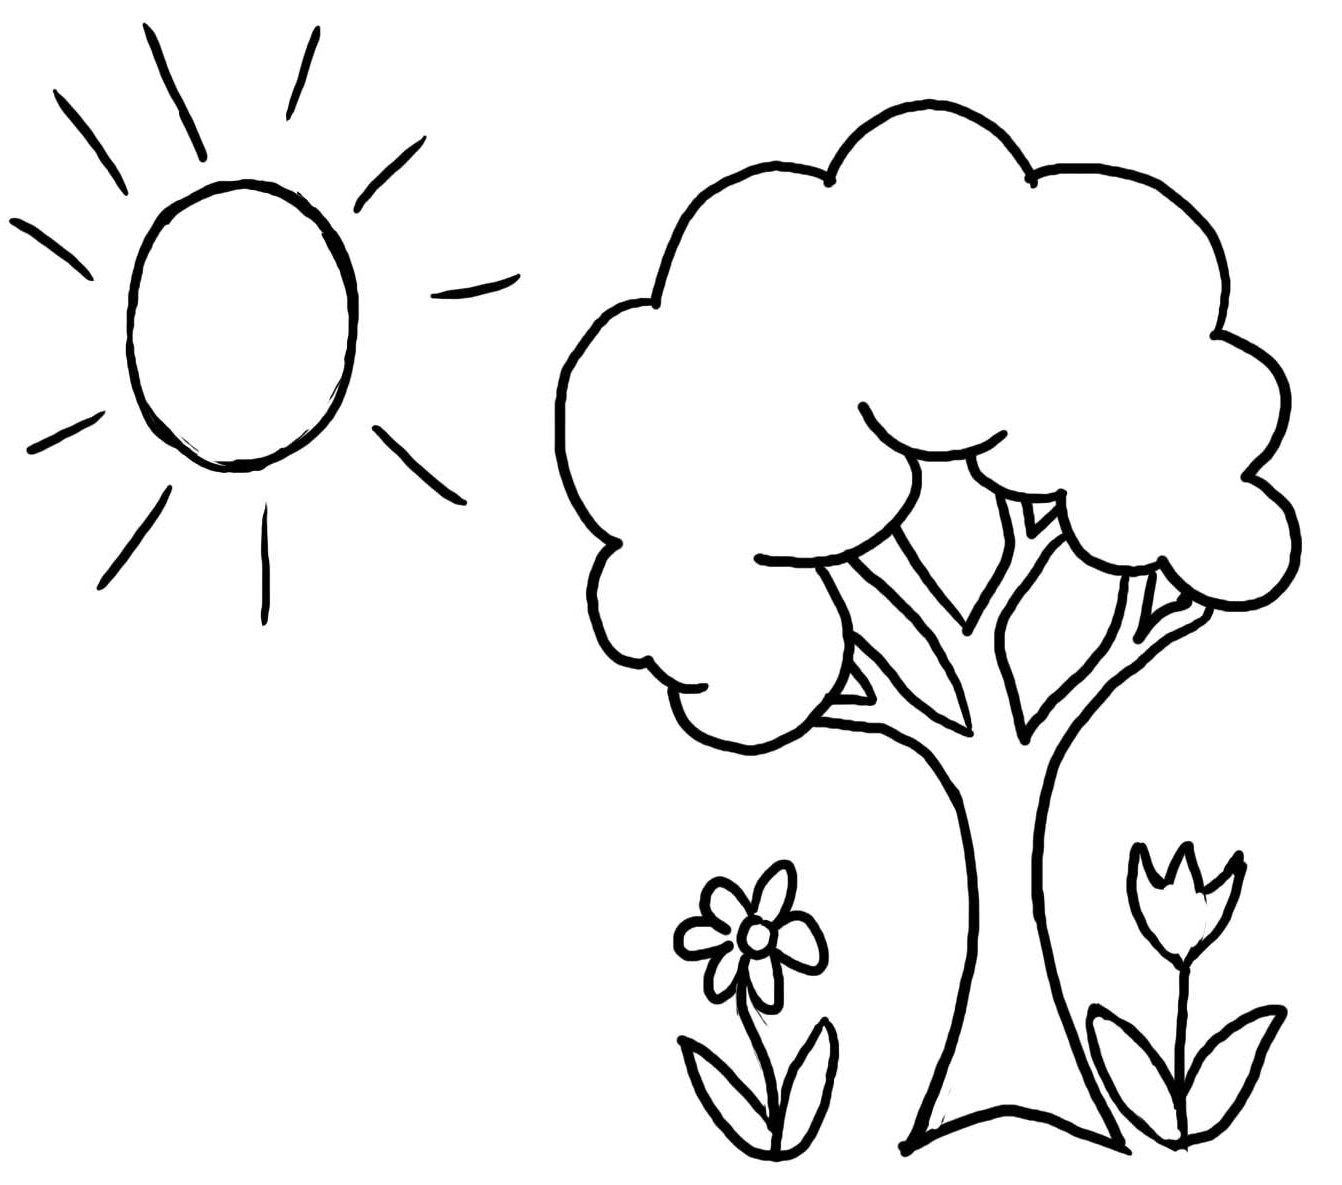 1342x1185 Simple Tree Colouring Images Coloring Pages Trees Google Search